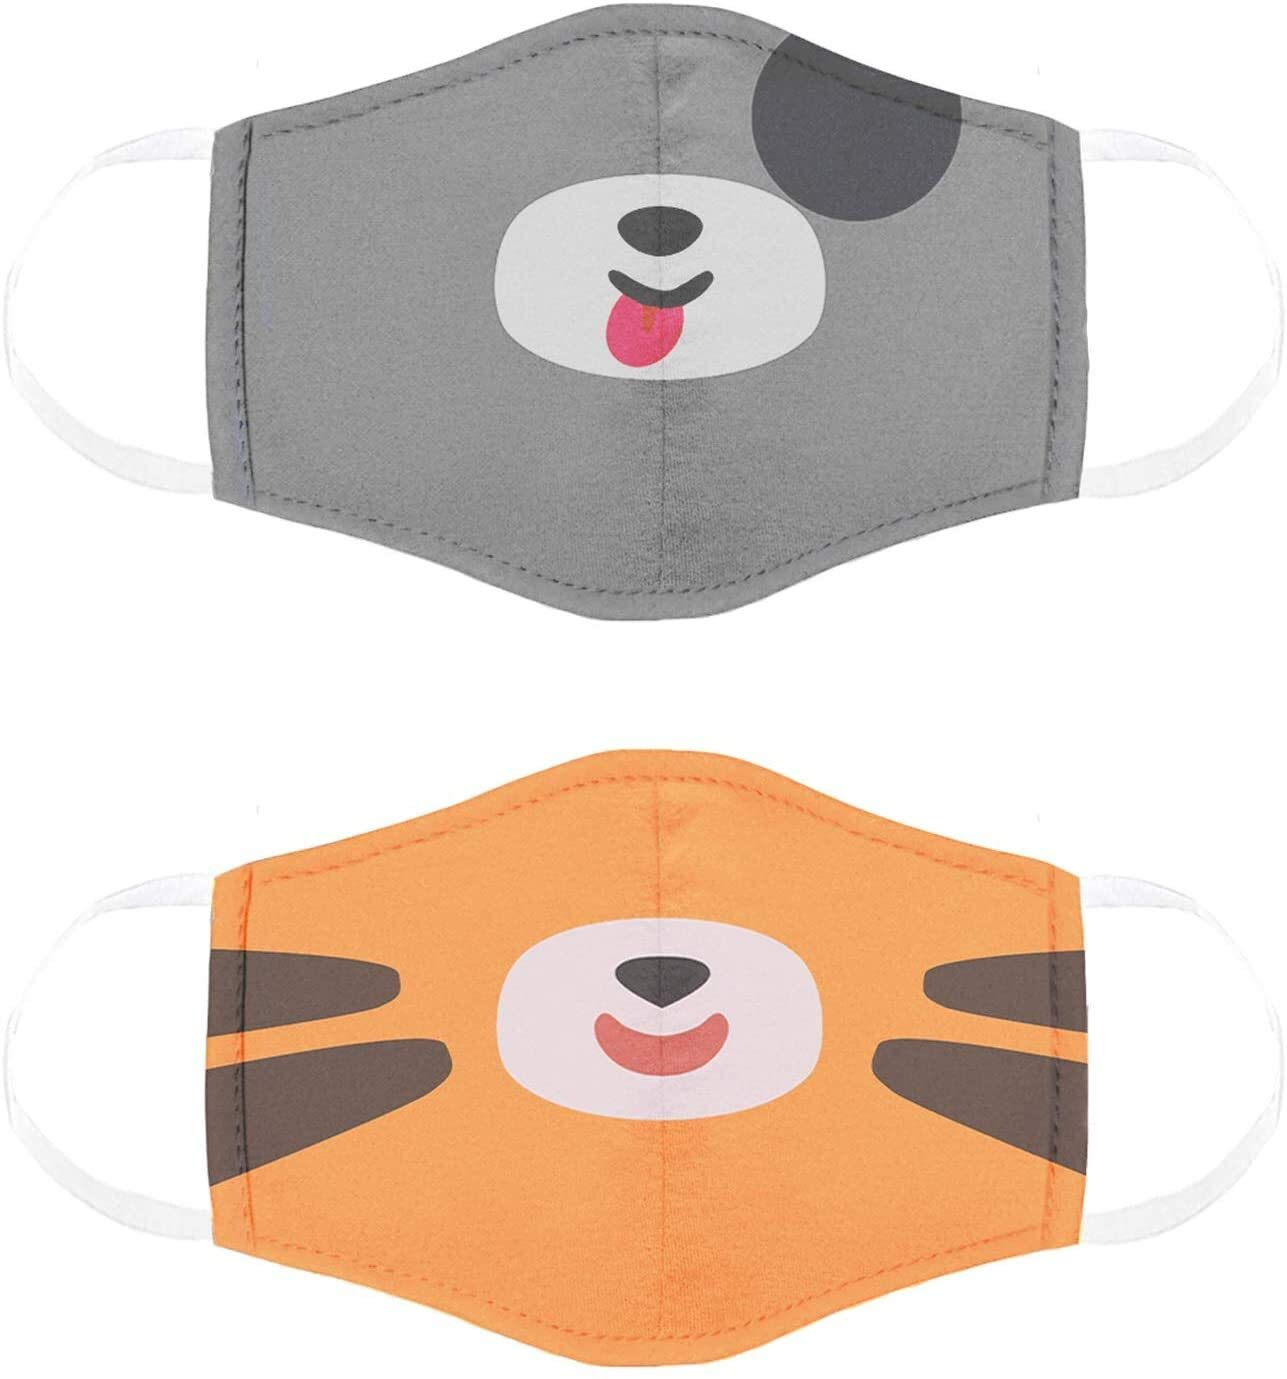 Kids Face Mask 2 Pack, Breathable & Comfortable Masks for Kids, Reusable and Washable, Face Masks for School and Everyday Use, Pimm the Puppy and Tomo the Tiger